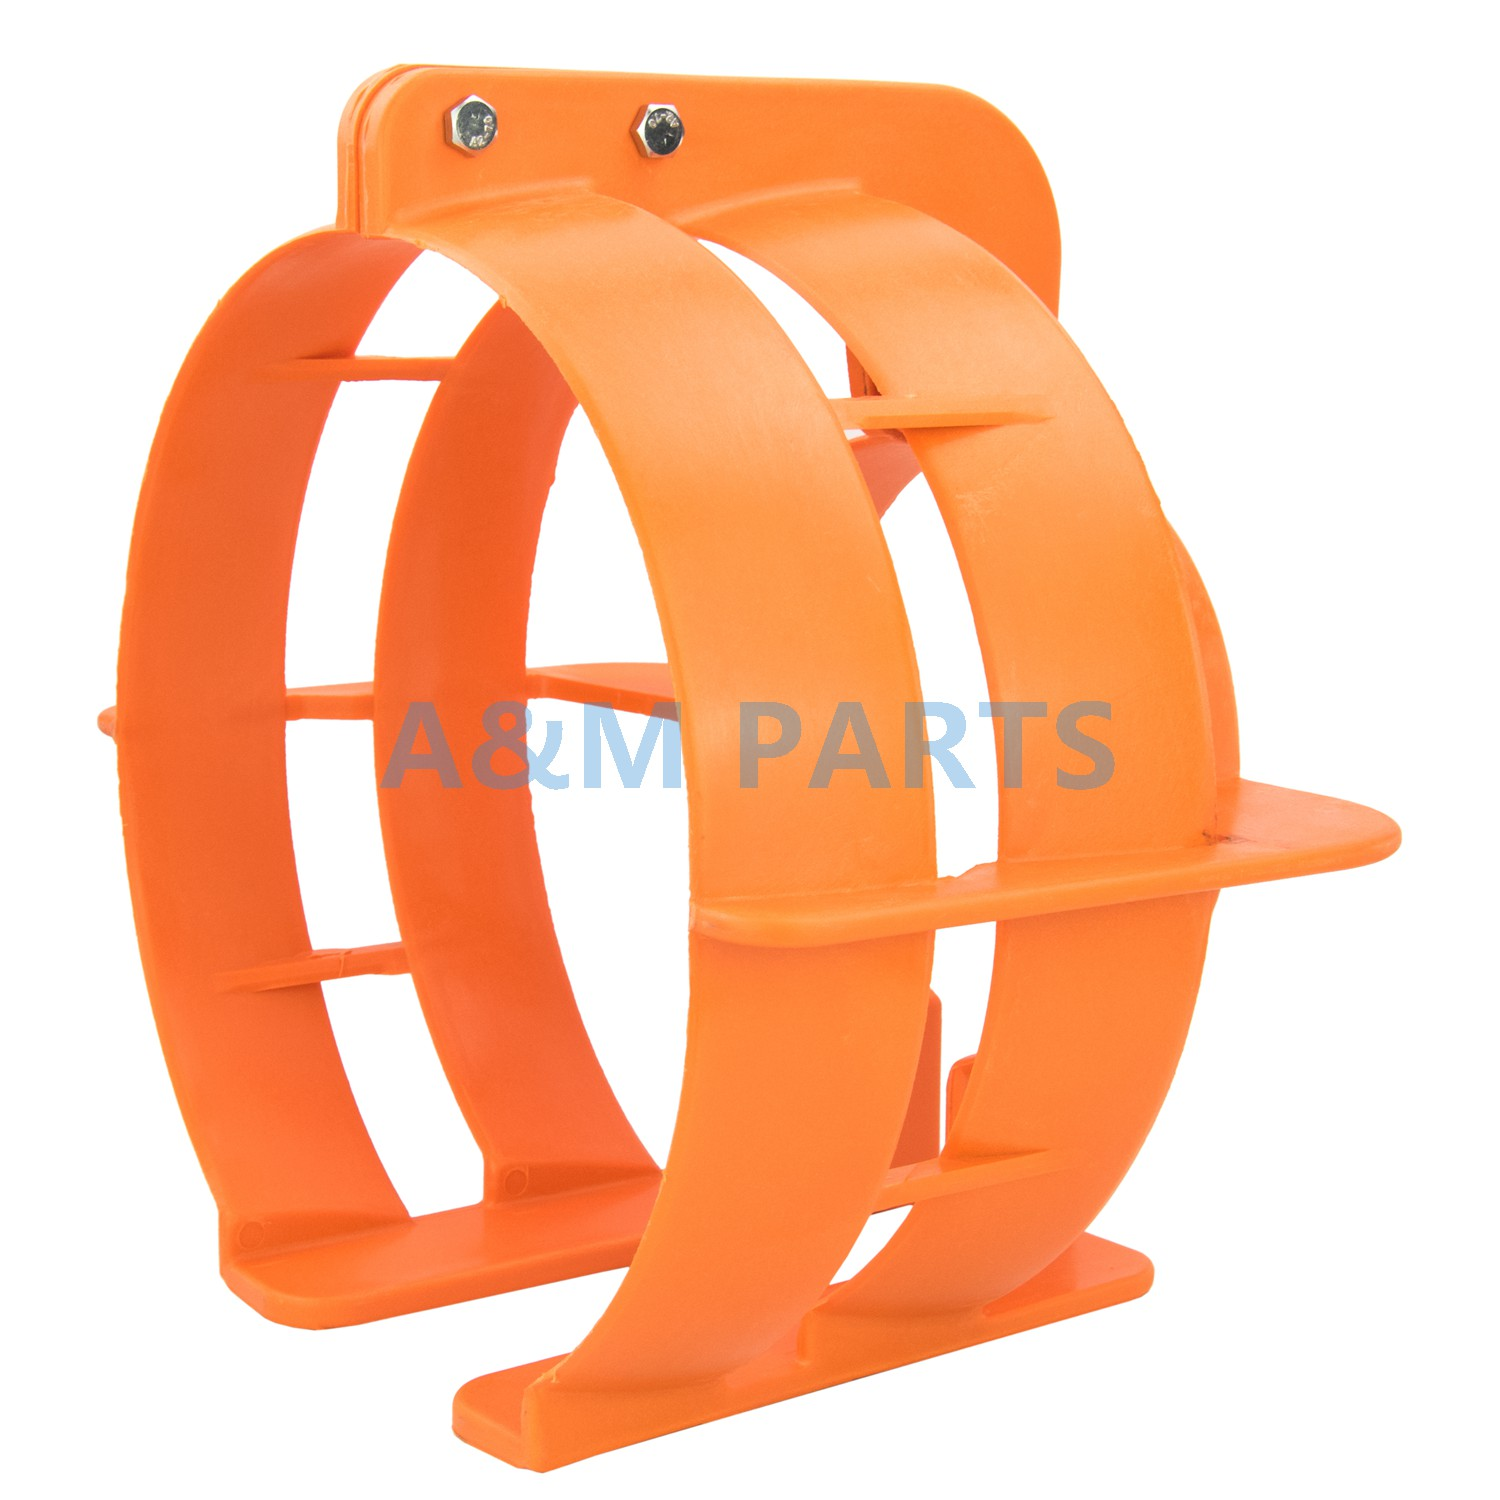 Outboard Prop Guard Boat Propeller Guard Plastic For 11 Inch Propeller 25 To 35HP Marine Engine Protects Swimming Water Ski